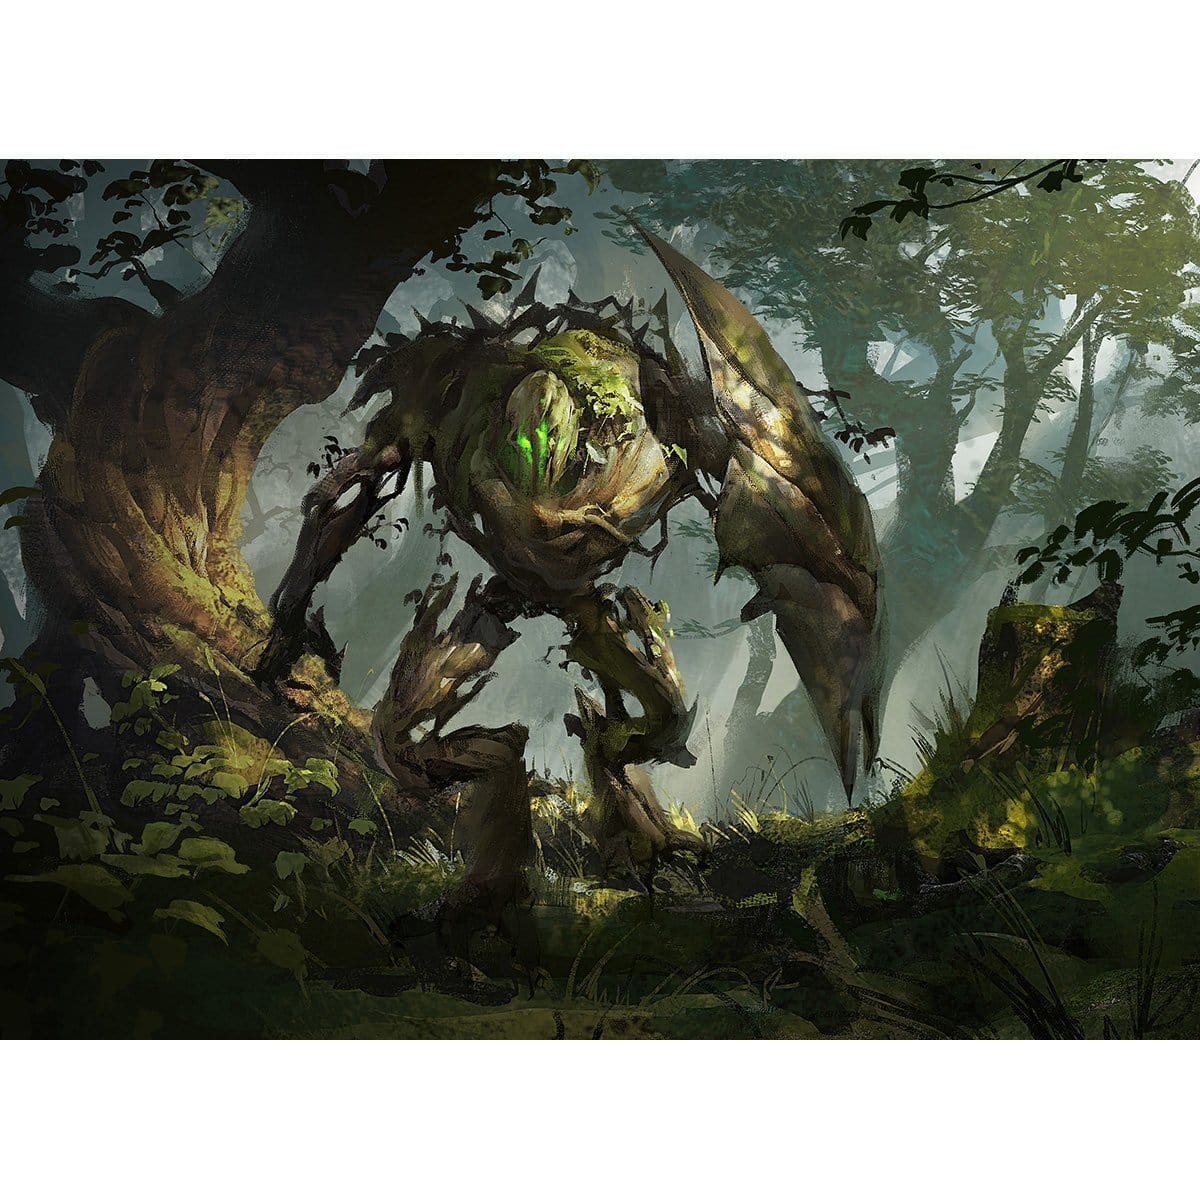 Gaea's Protector Print - Print - Original Magic Art - Accessories for Magic the Gathering and other card games